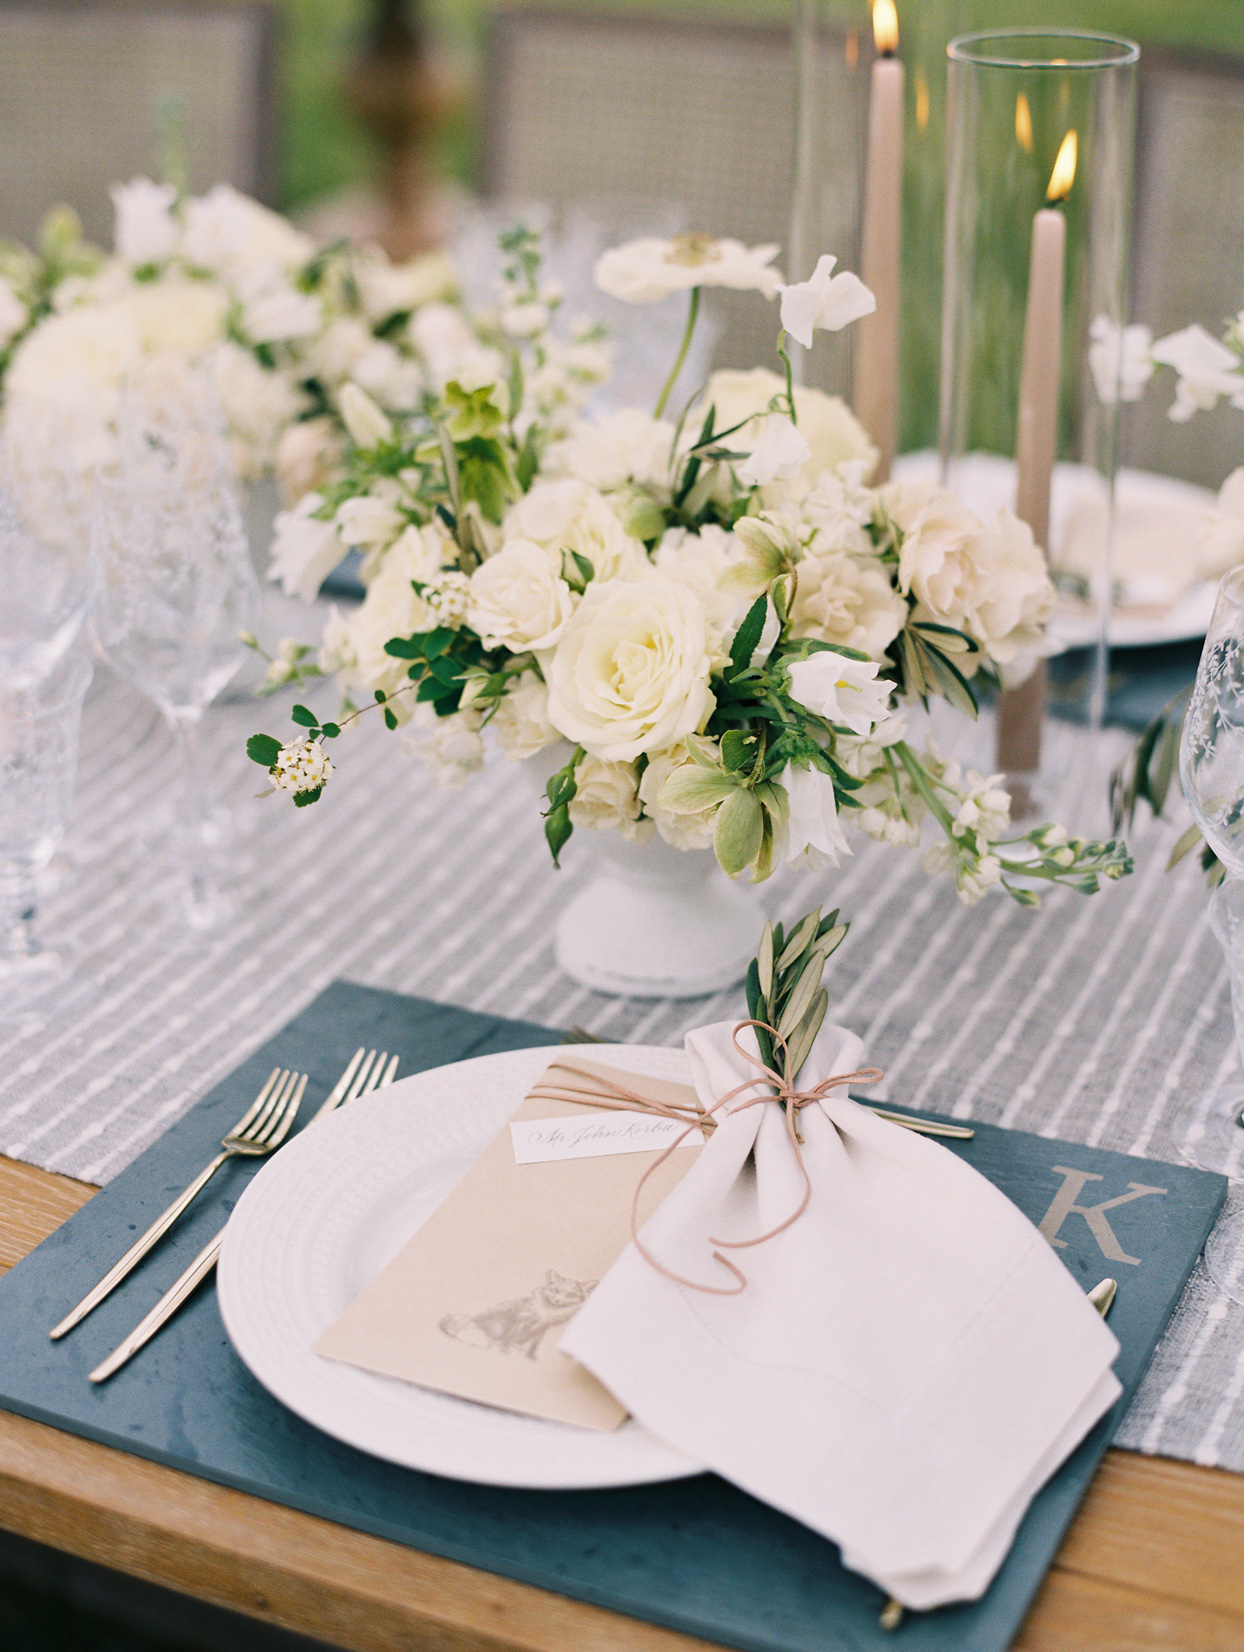 white plates on blue gray placemats